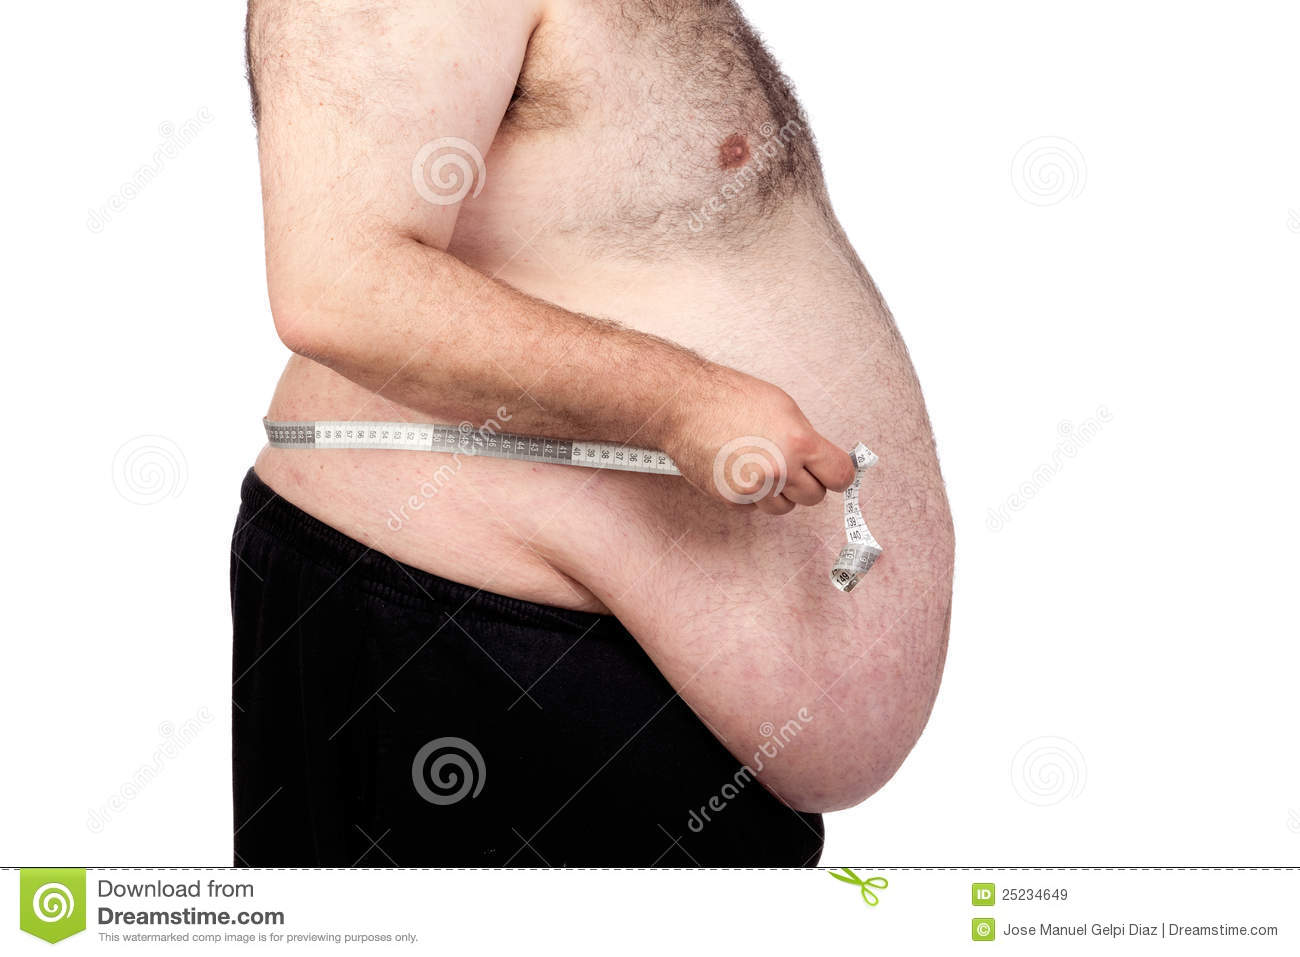 Image result for free image of fat man